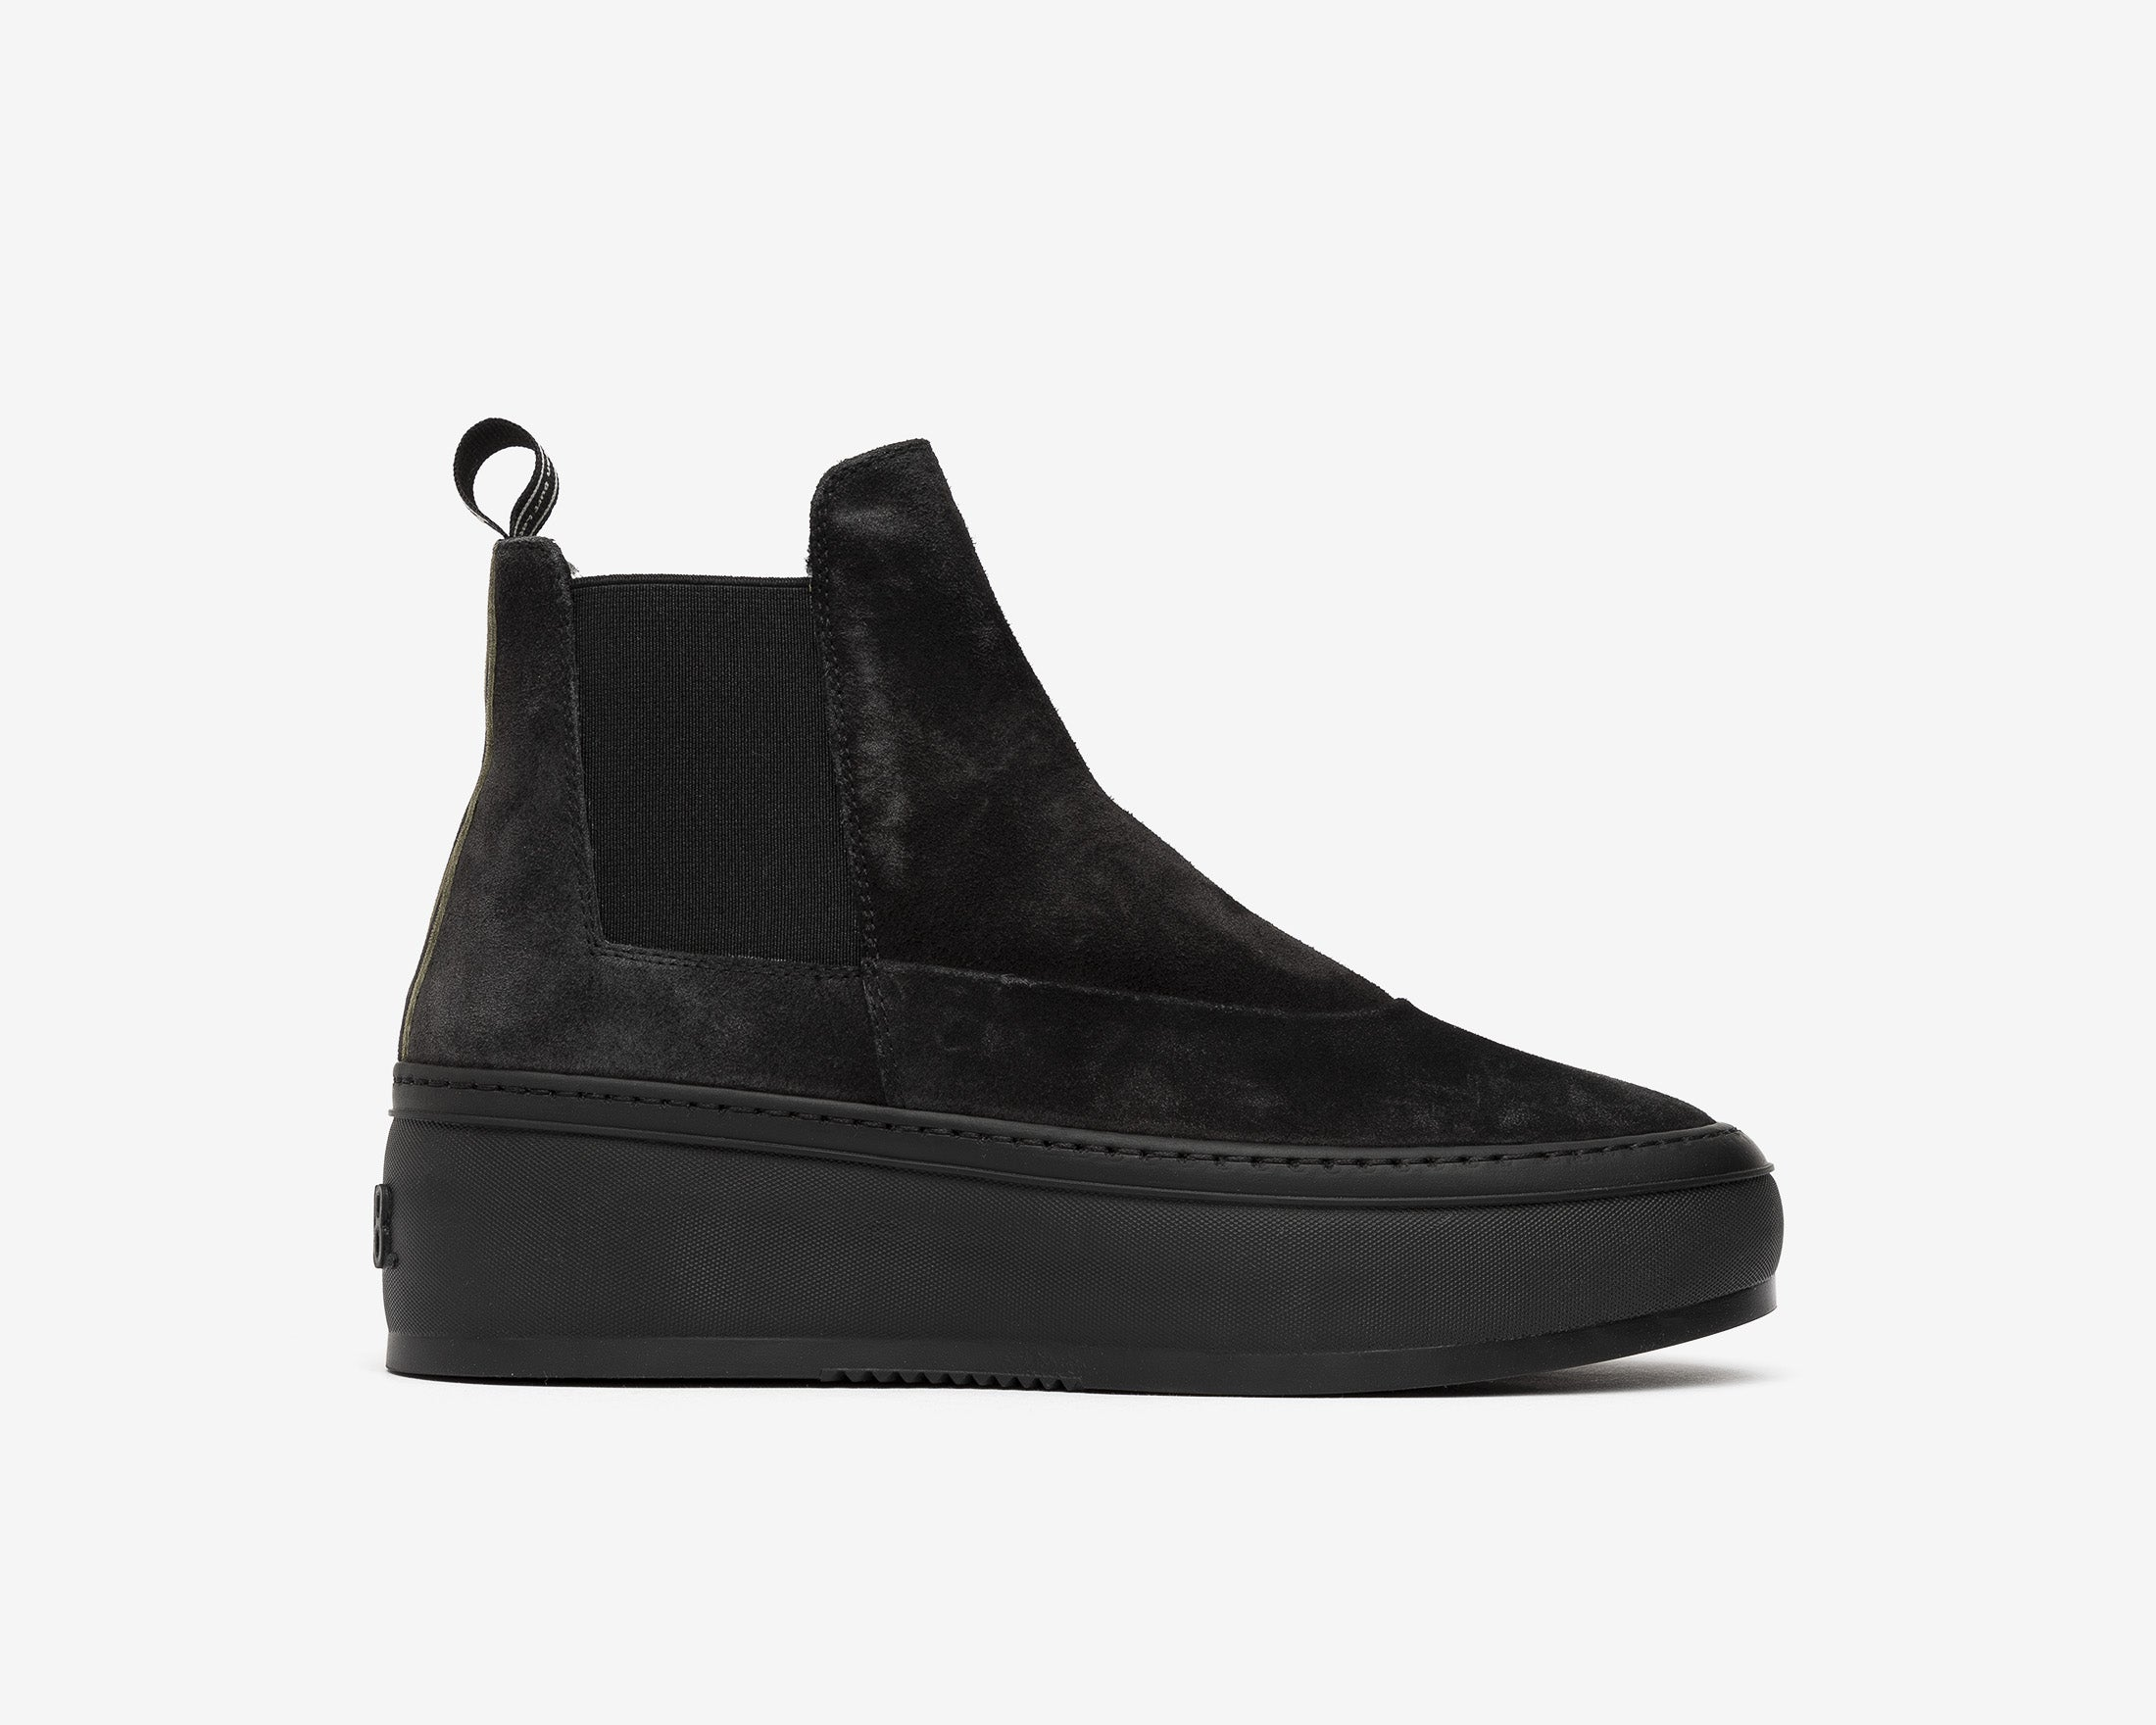 Lucy Chunky Platform Sneaker in Black/Army Zeb - Profile